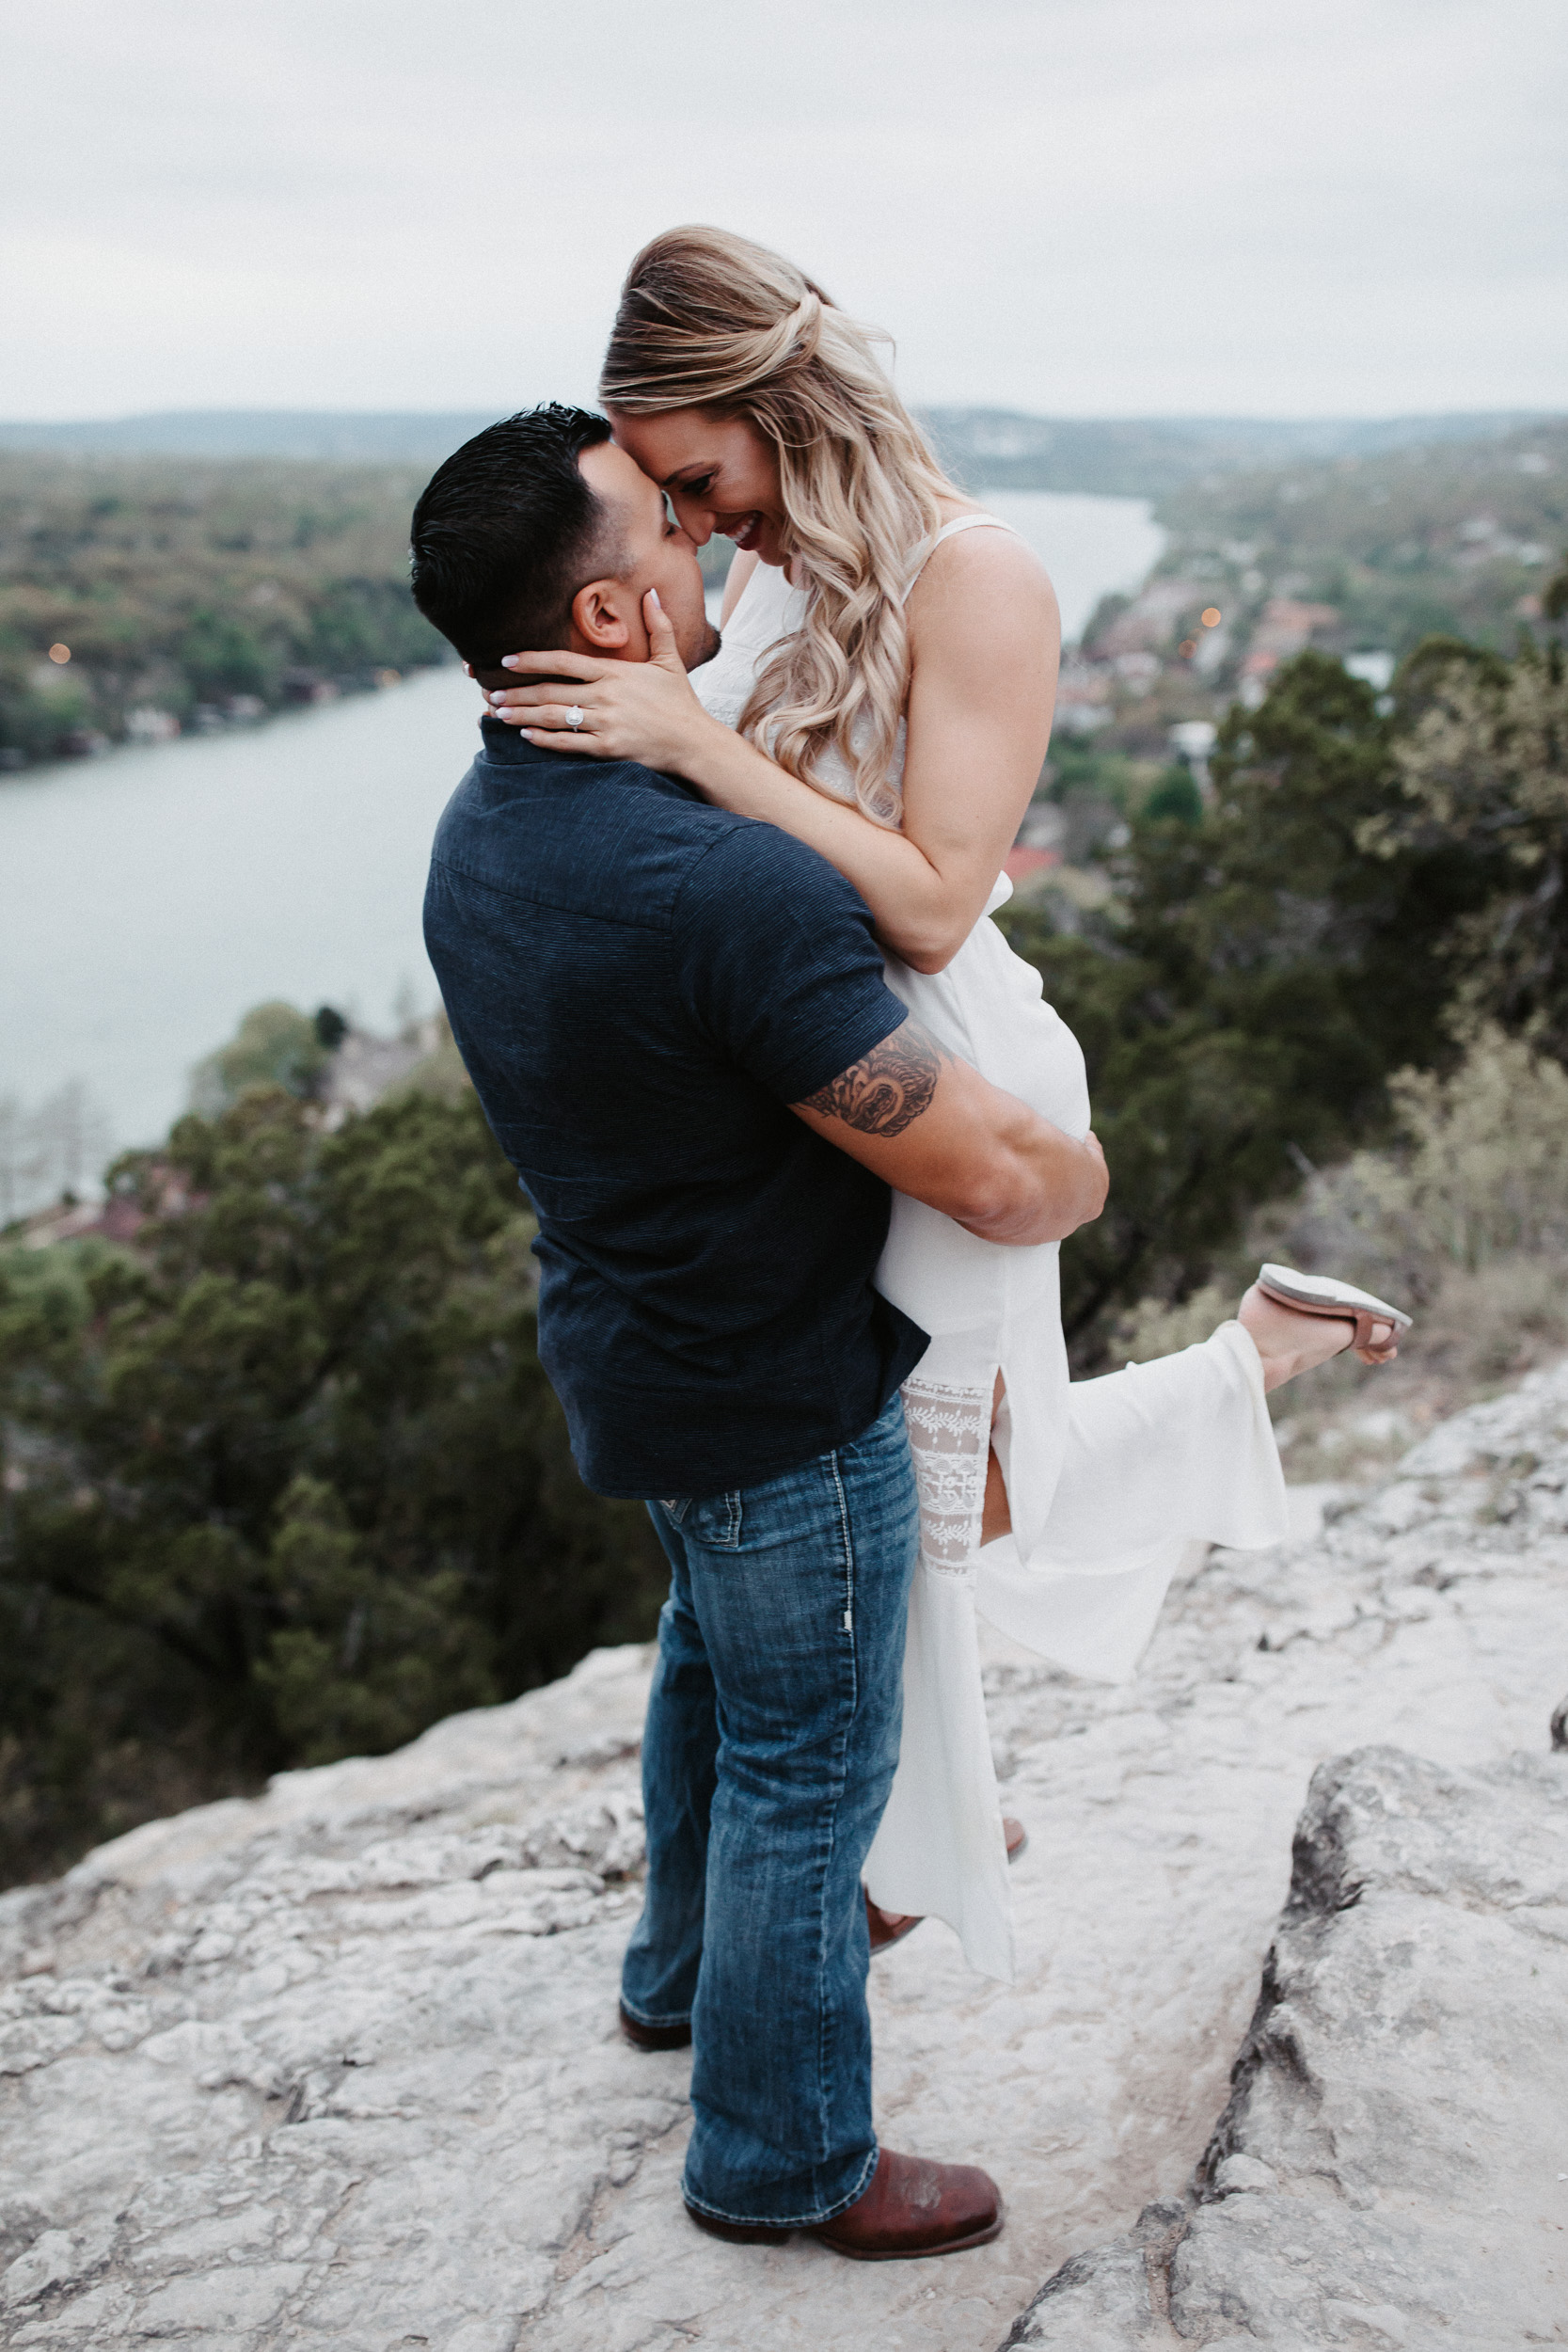 liz-stephen-engagement-mount-bonnell-austin-texas-026.jpg